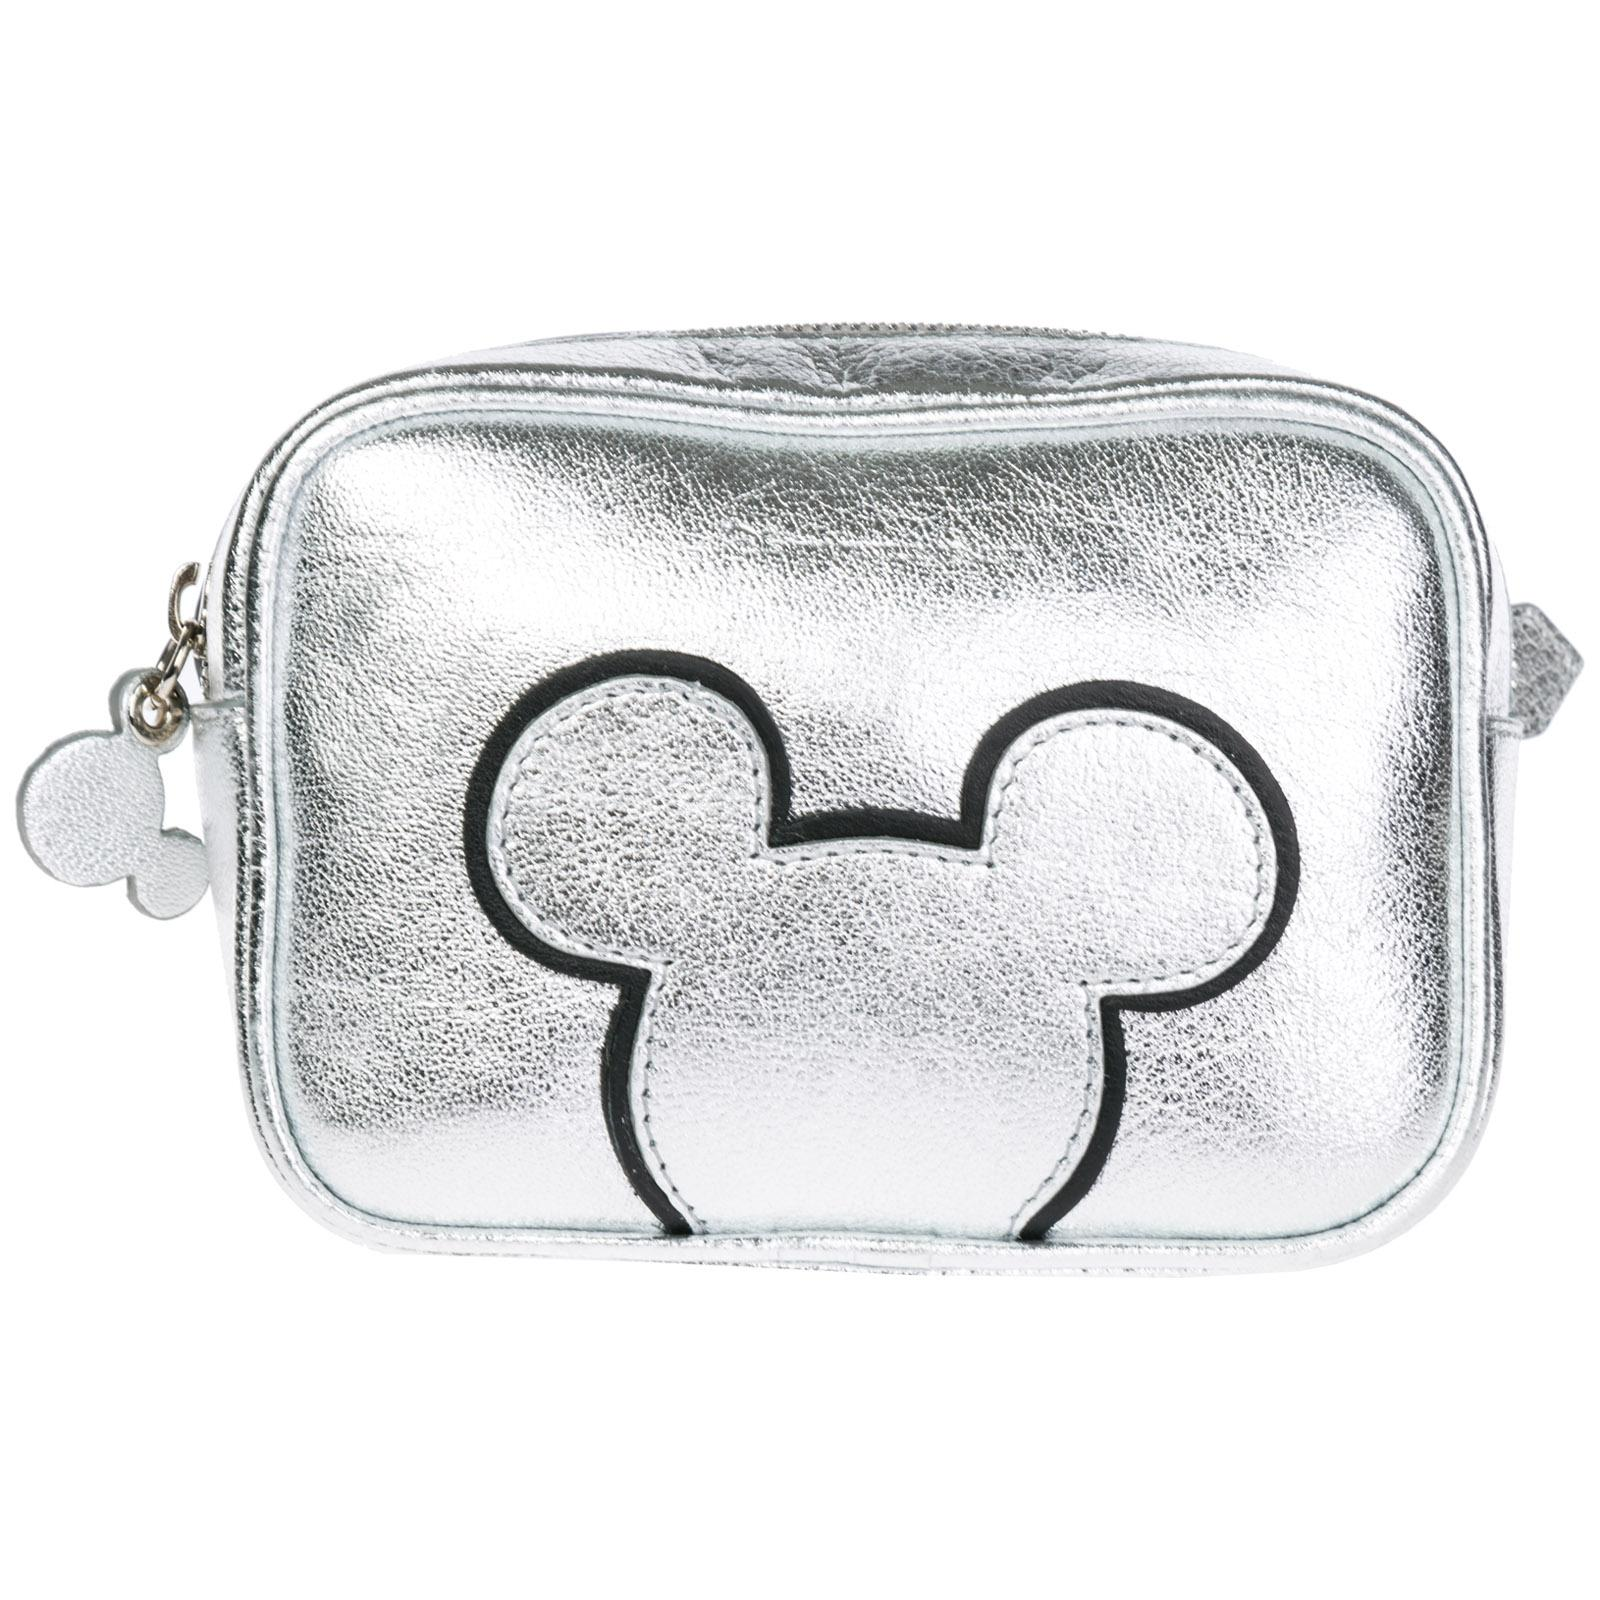 6e32ab0d20af Moa Master Of Arts Women's Leather Belt Bum Bag Hip Pouch Disney Mickey  Mouse In Silver